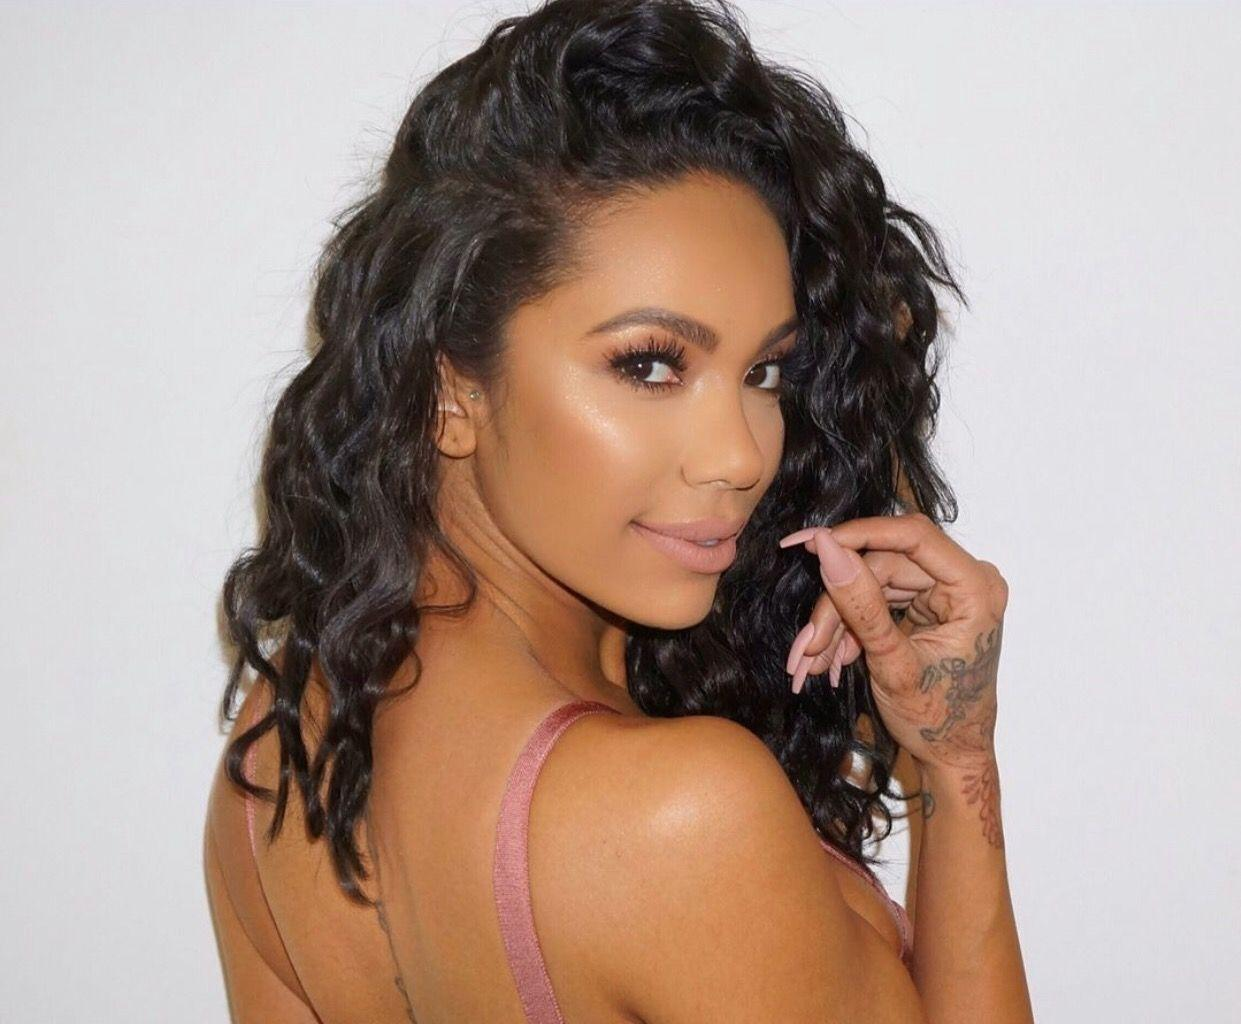 Erica Mena Breaks The Internet With The Latest Thirst Traps - See Her Pics Here!